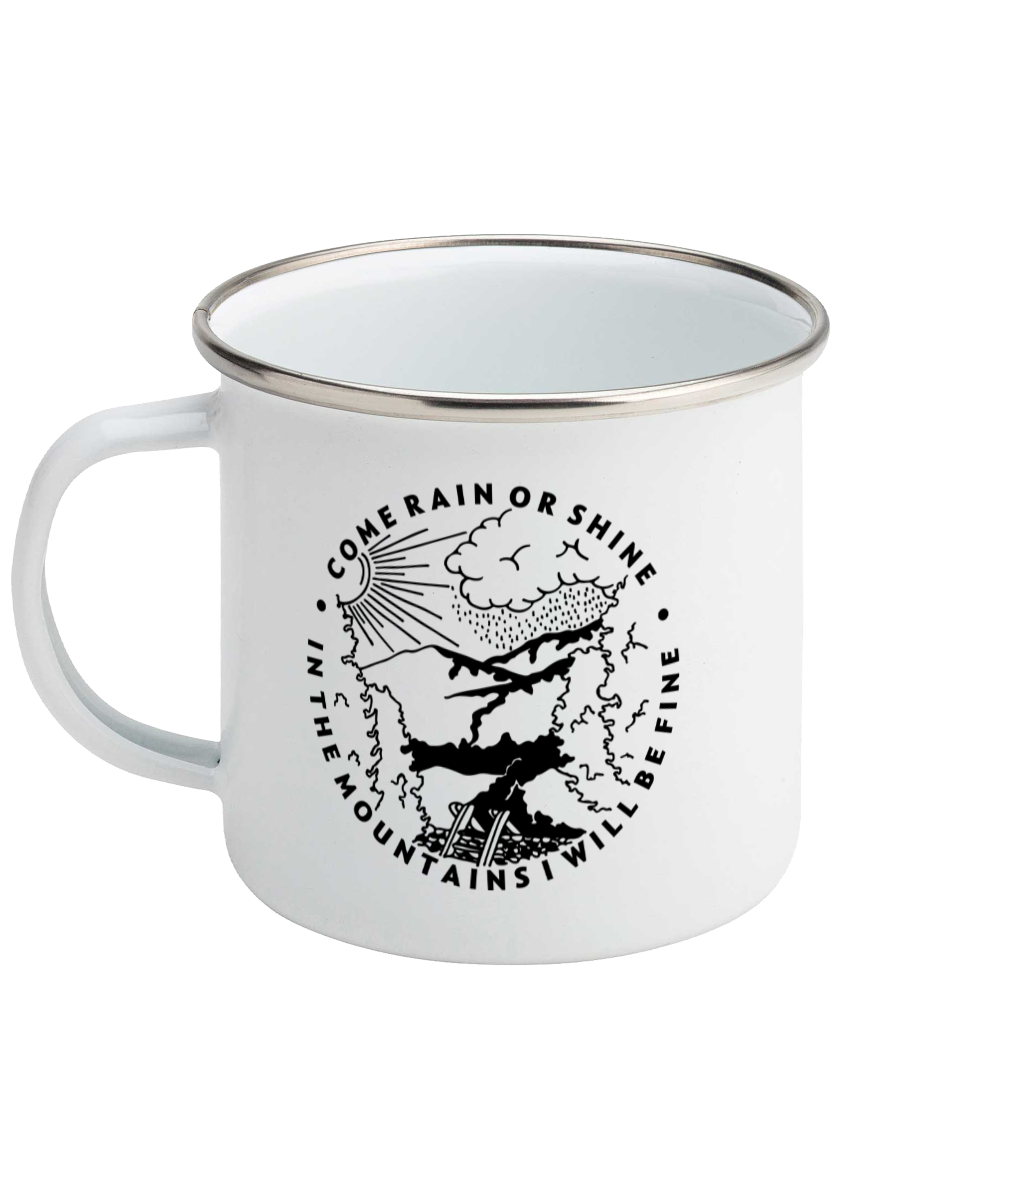 Come Rain Or Shine - Enamel Mug, Suggested Products, Pen and Ink Studios Adventure Clothing